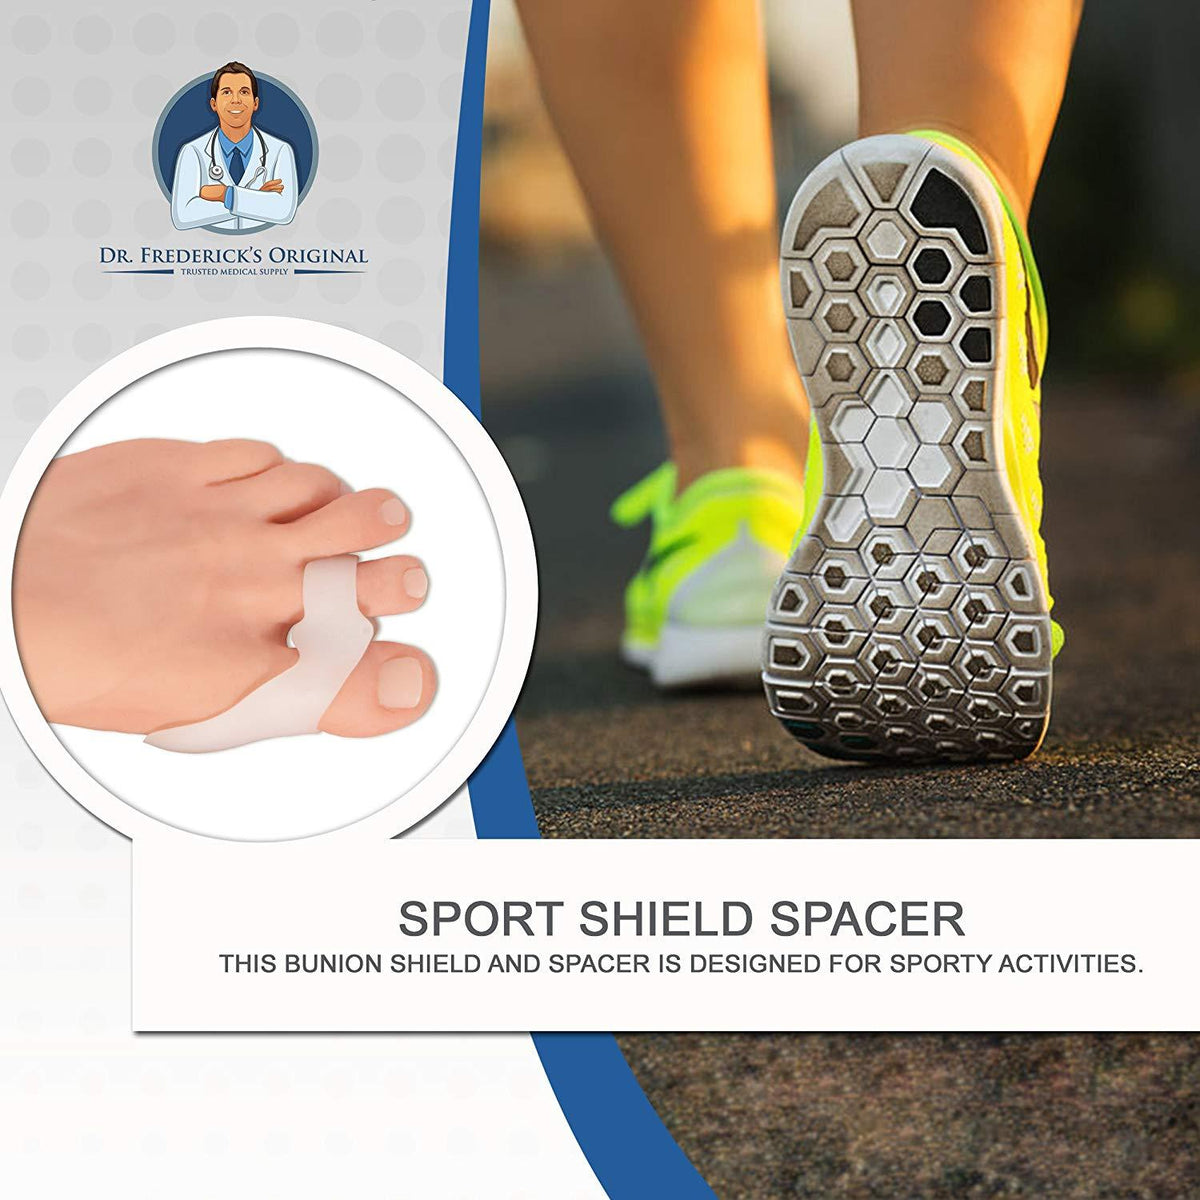 Dr. Frederick's Original Sport Bunion Pad & Toe Spacer Set -- 2 Pieces - for Active People with Bunions Foot Pain Dr. Frederick's Original